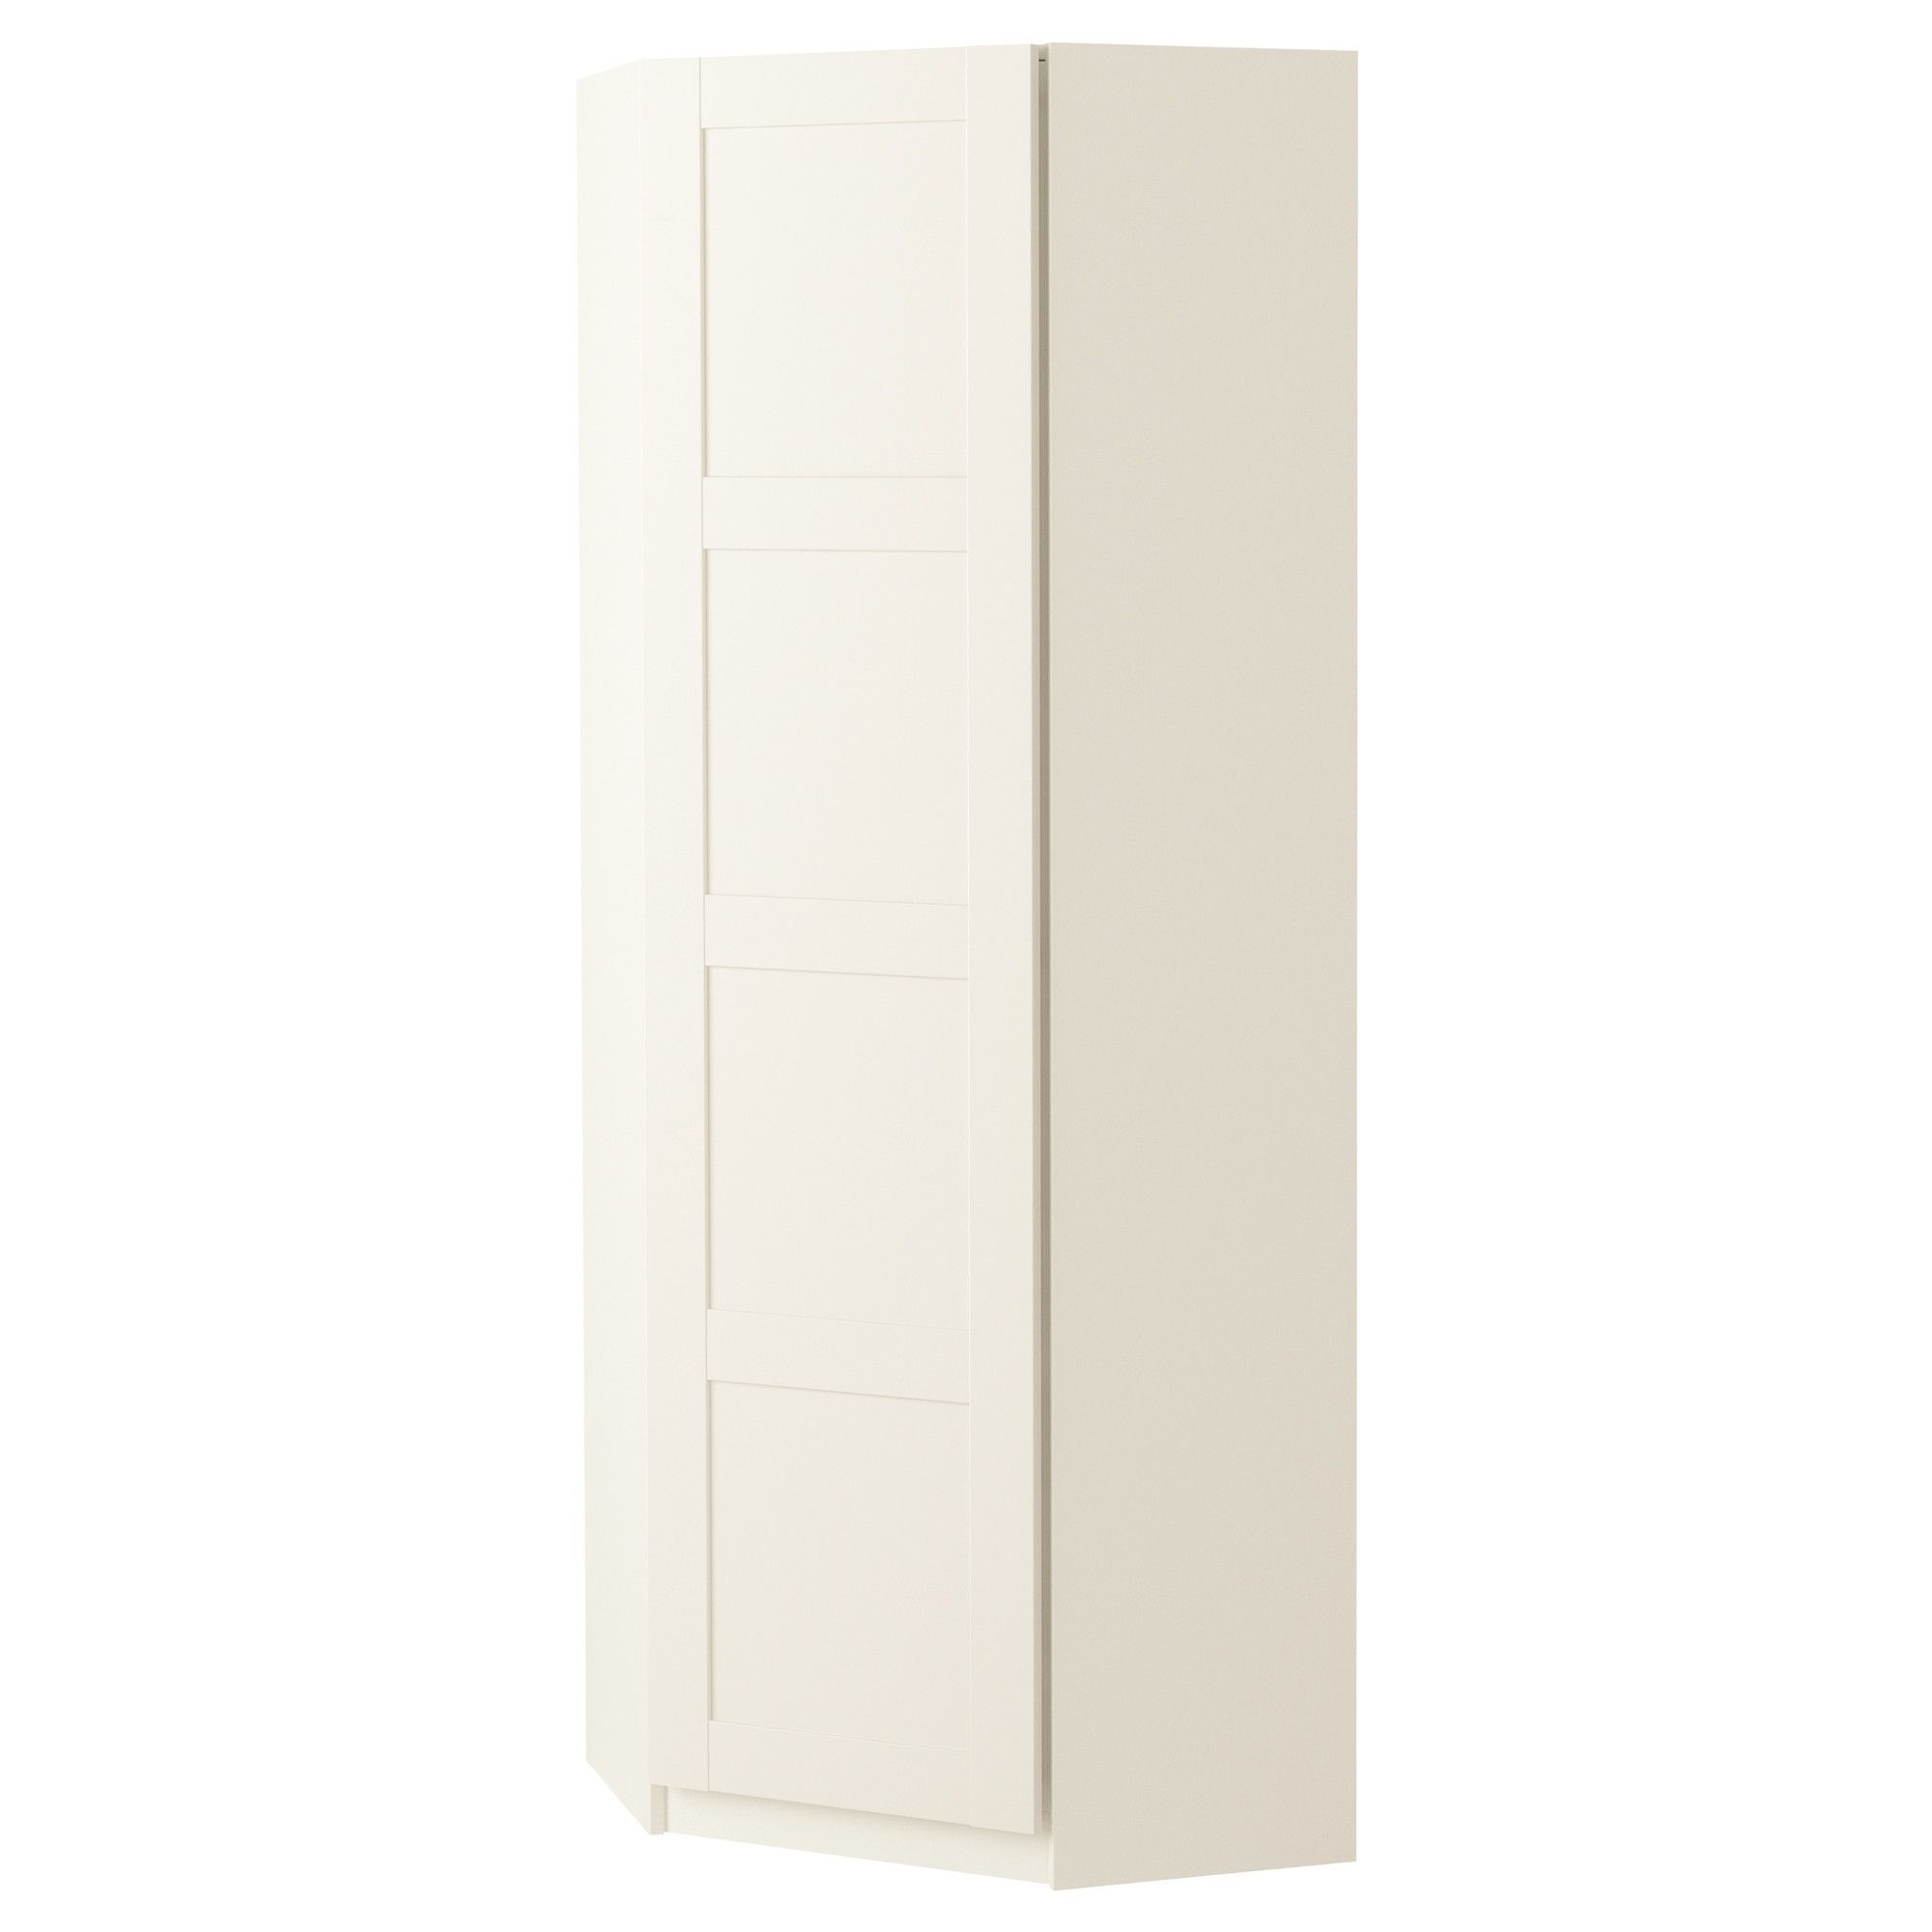 PAX Corner wardrobe IKEA. | Our Philly row home ...